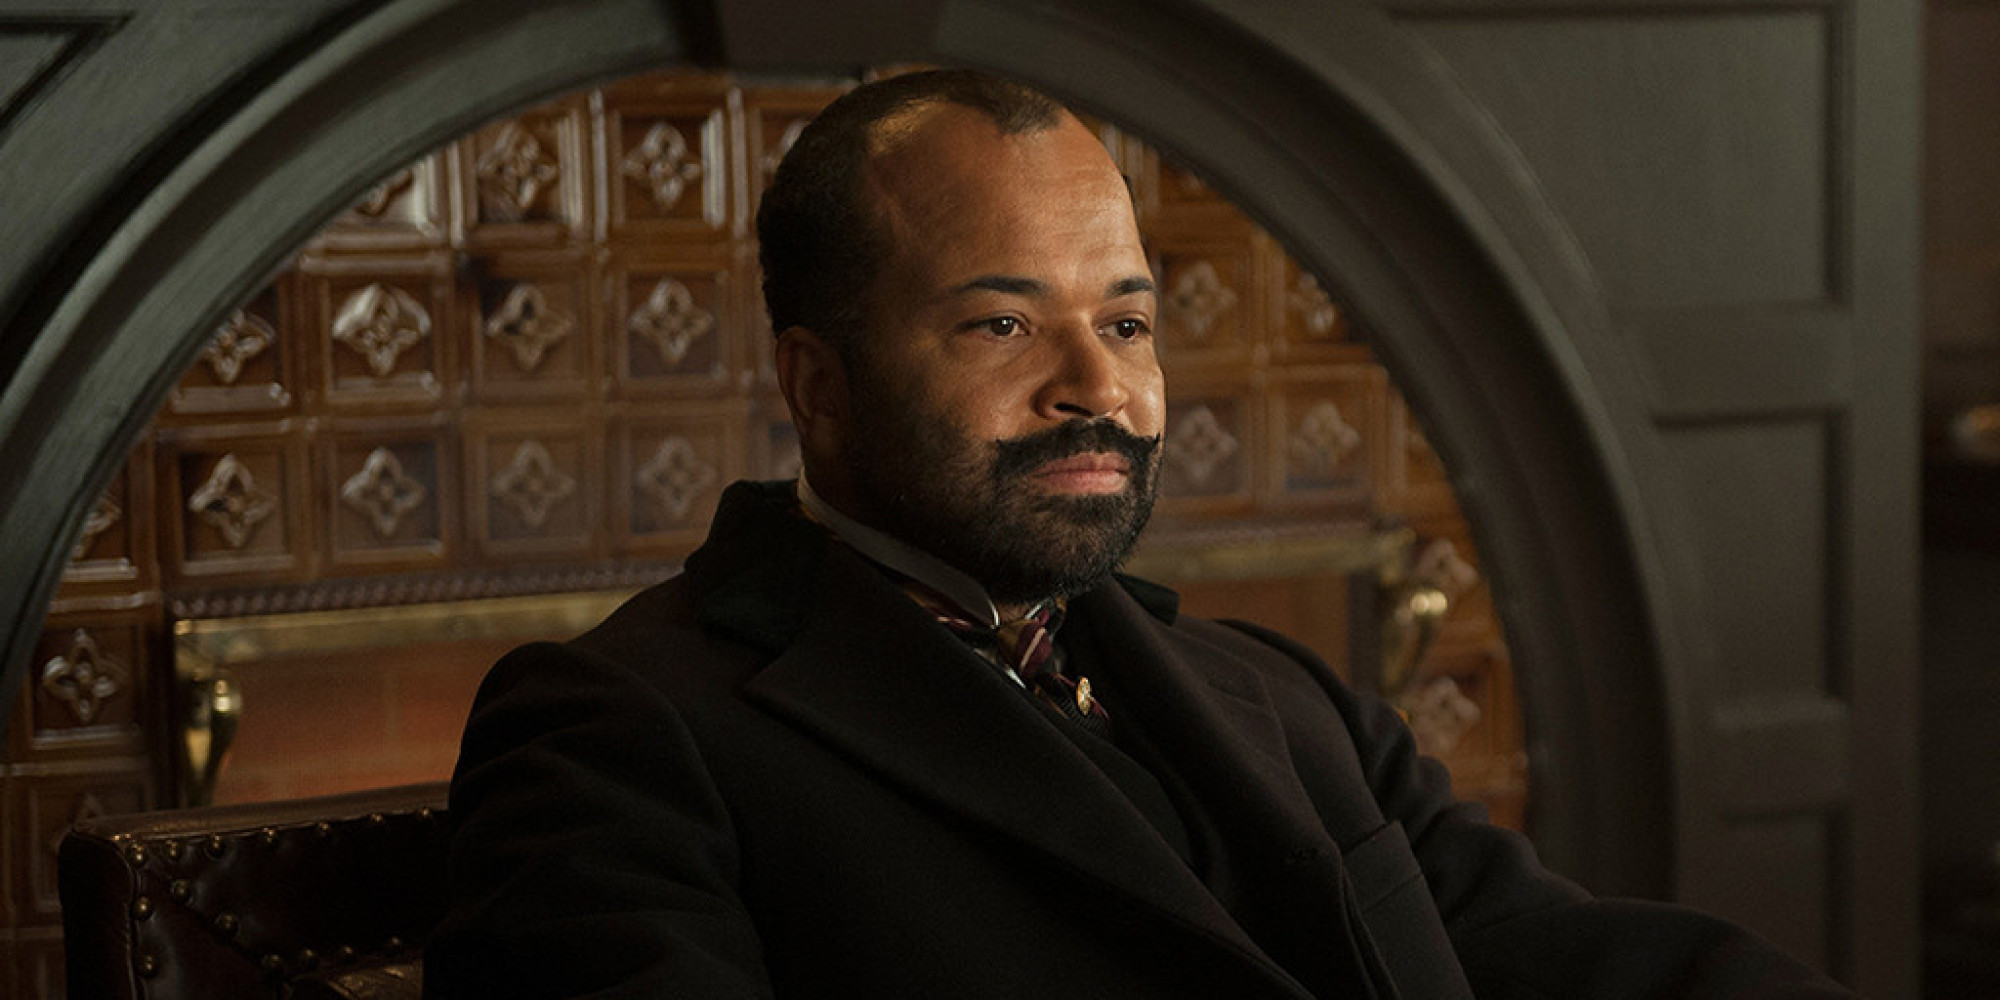 Boardwalk Empire U0027s Negro Problem: Creative License With DuBois And Garvey  | HuffPost